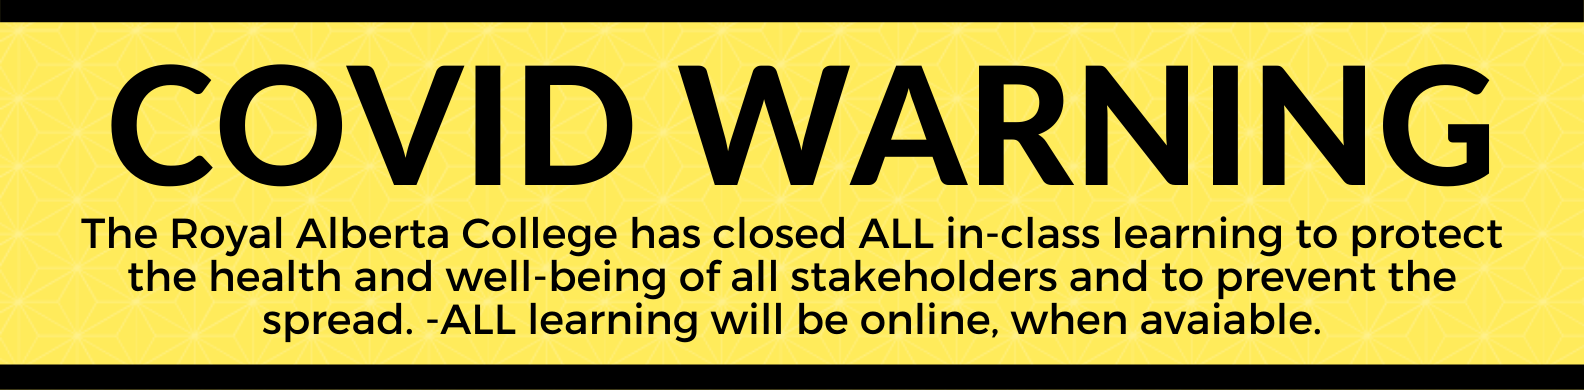 Covid Warning - The Royal Alberta College has closed ALL in-class learning to protect the health and well-being of all stakeholders. (4)